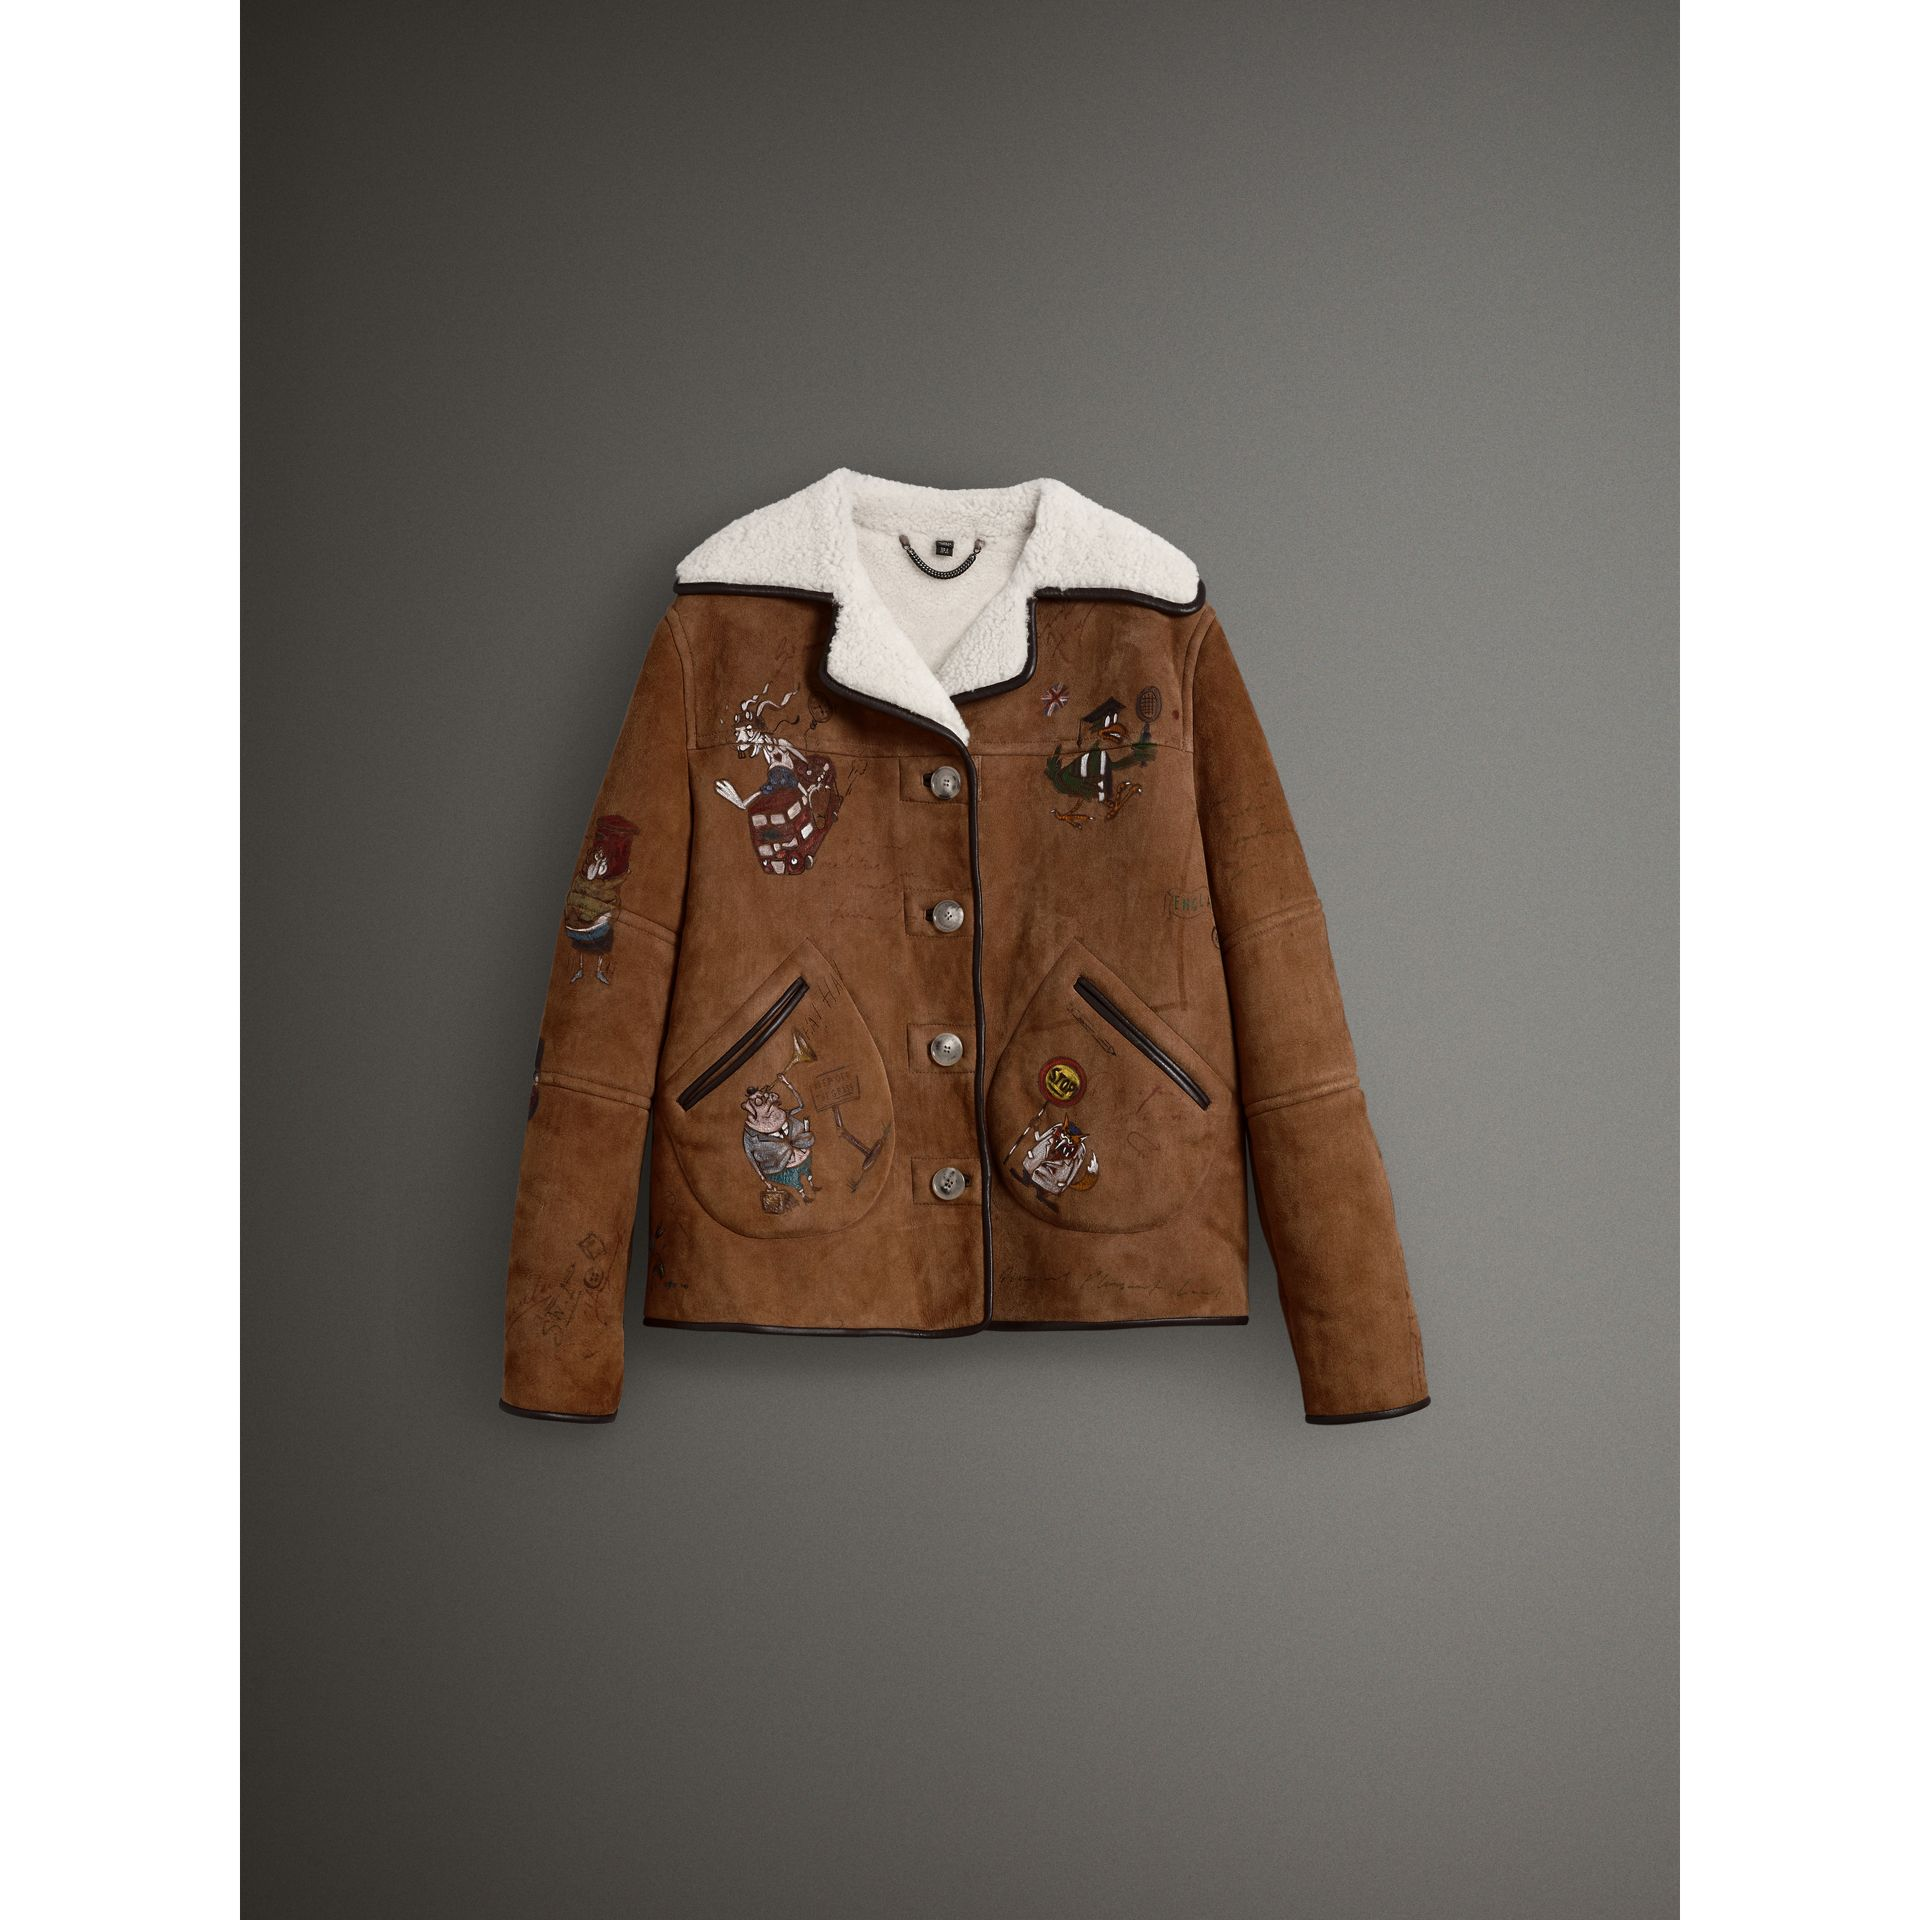 Sketch Print Shearling Jacket in Caramel - Women | Burberry - gallery image 3